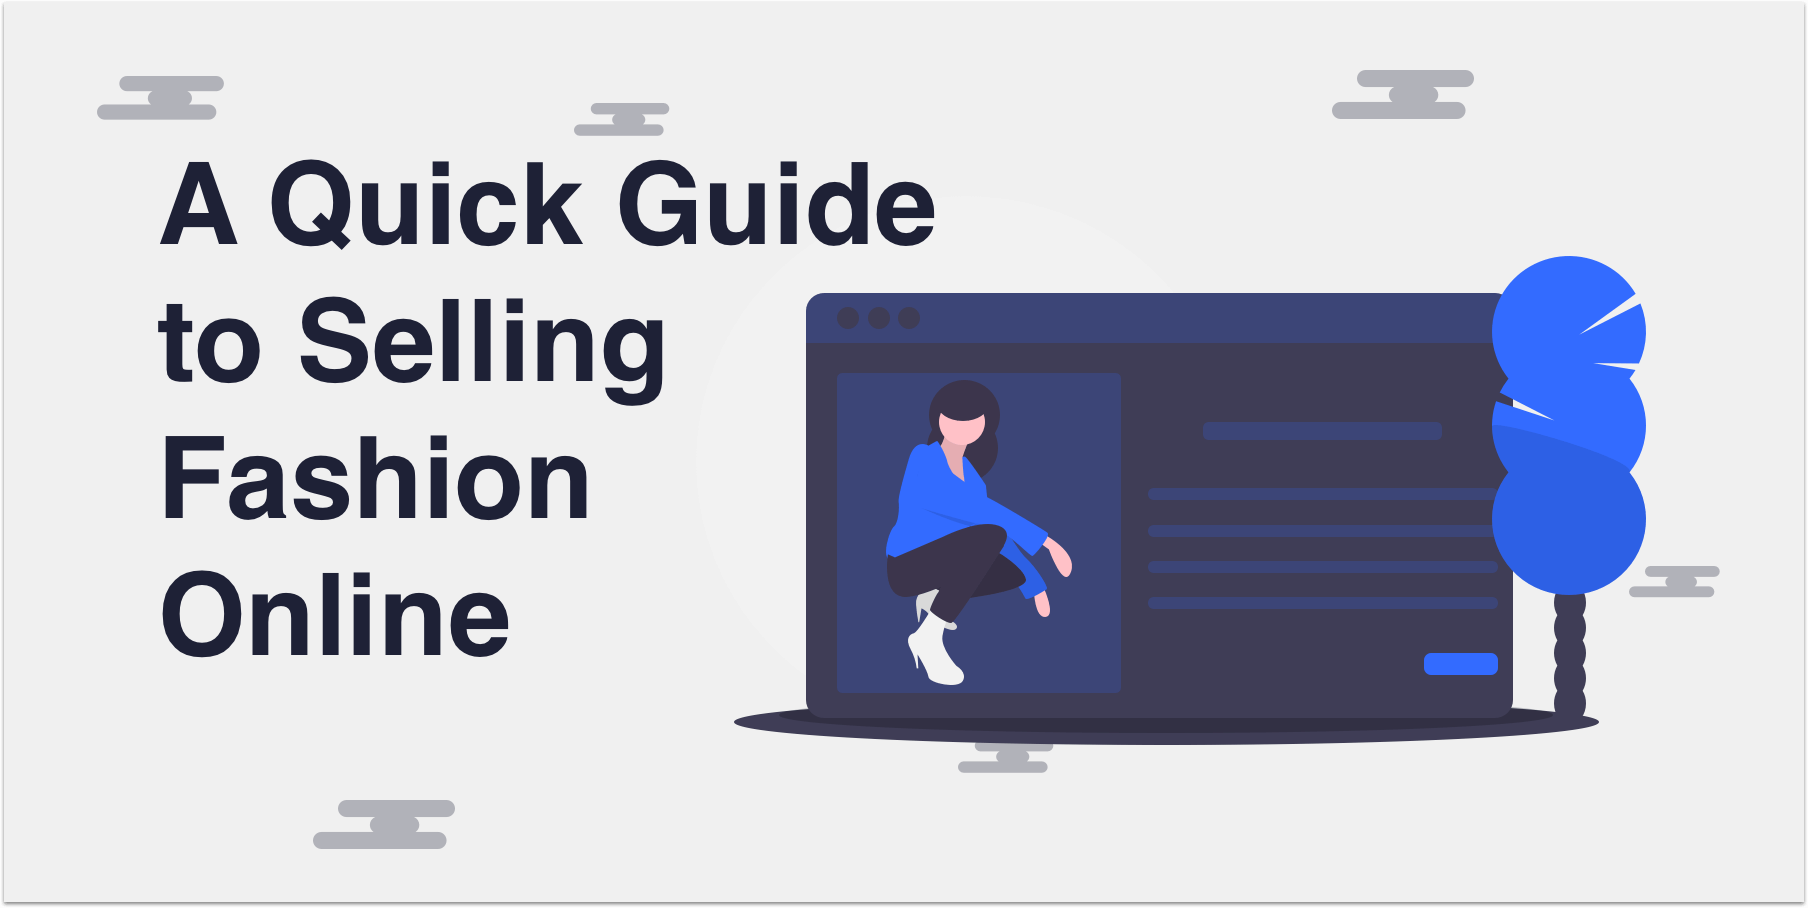 A Quick Guide to Selling Fashion Online